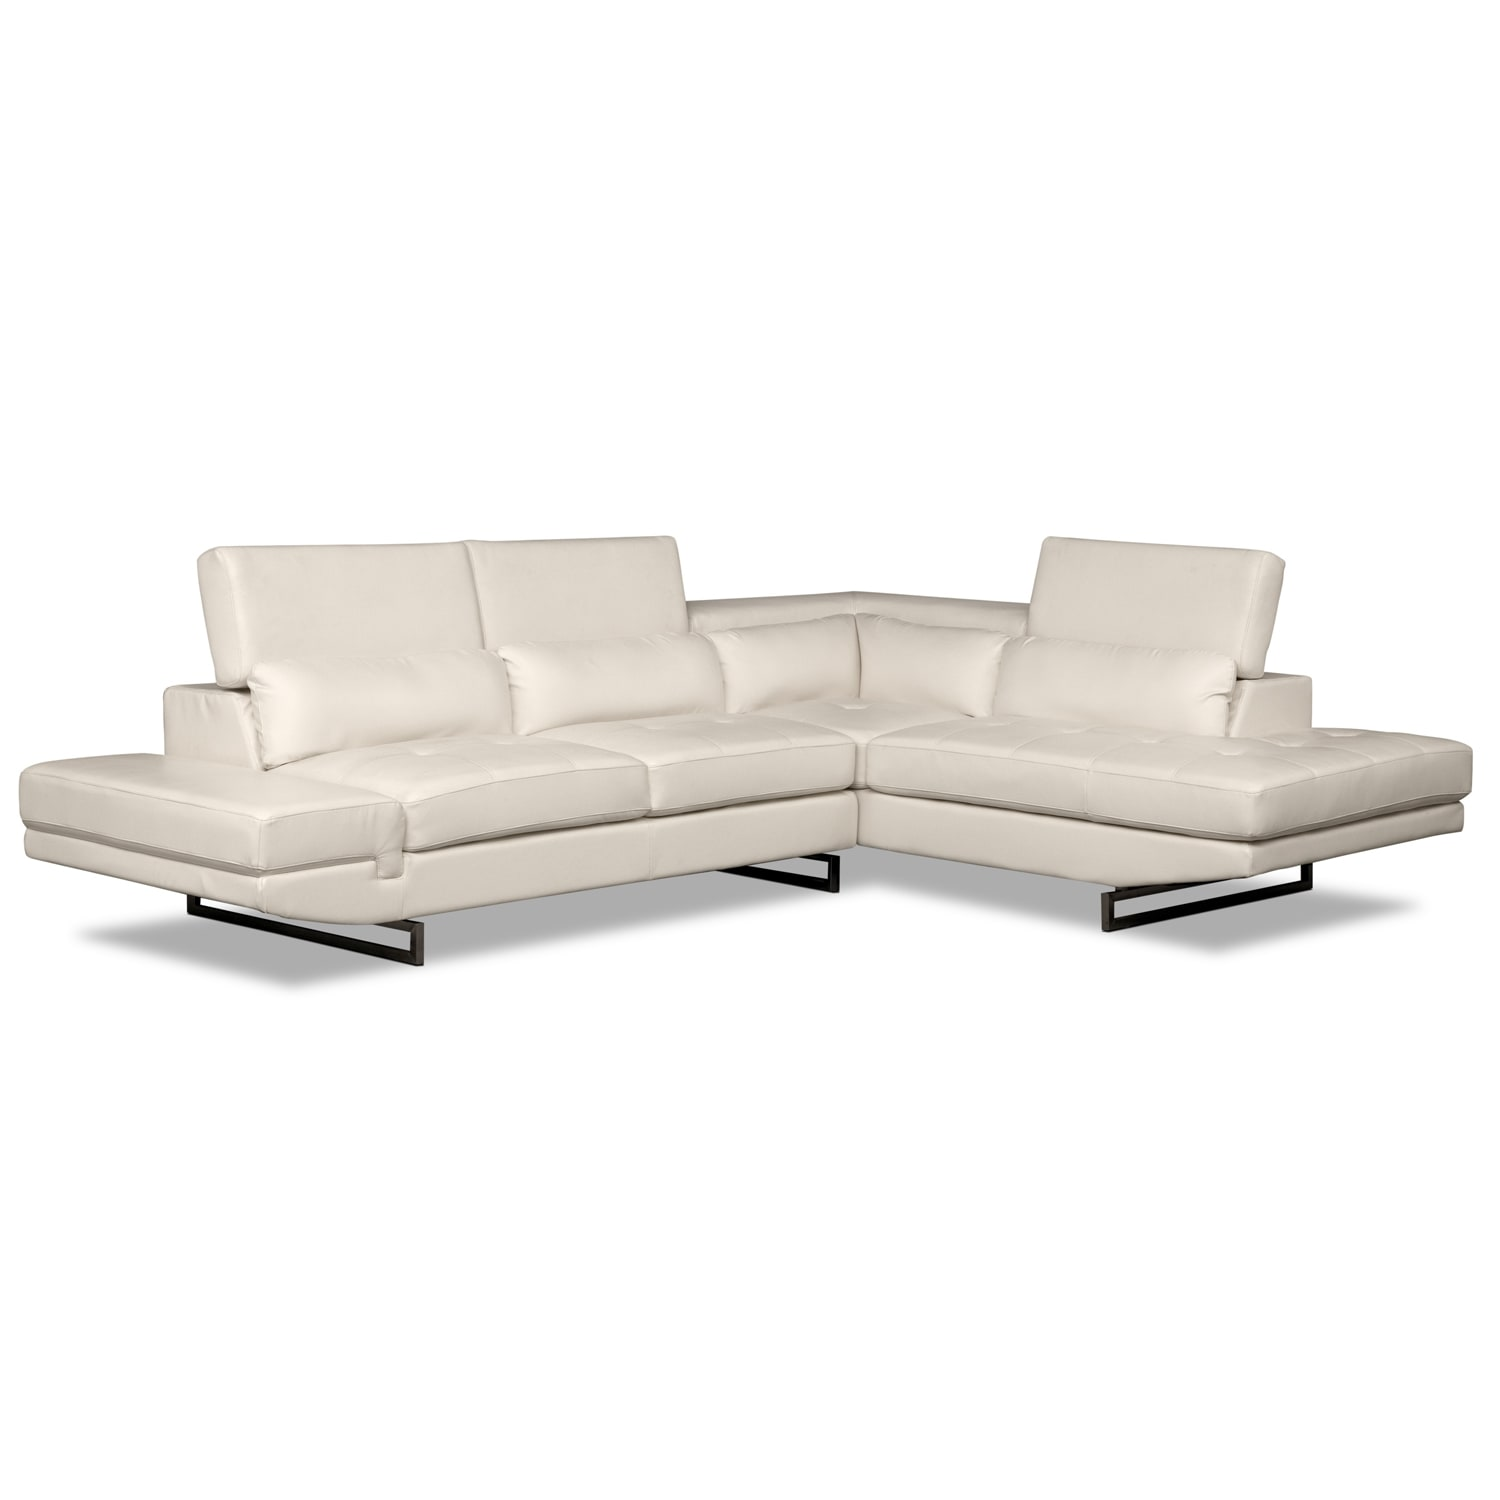 Saturn Living Room Sectional Ottoman